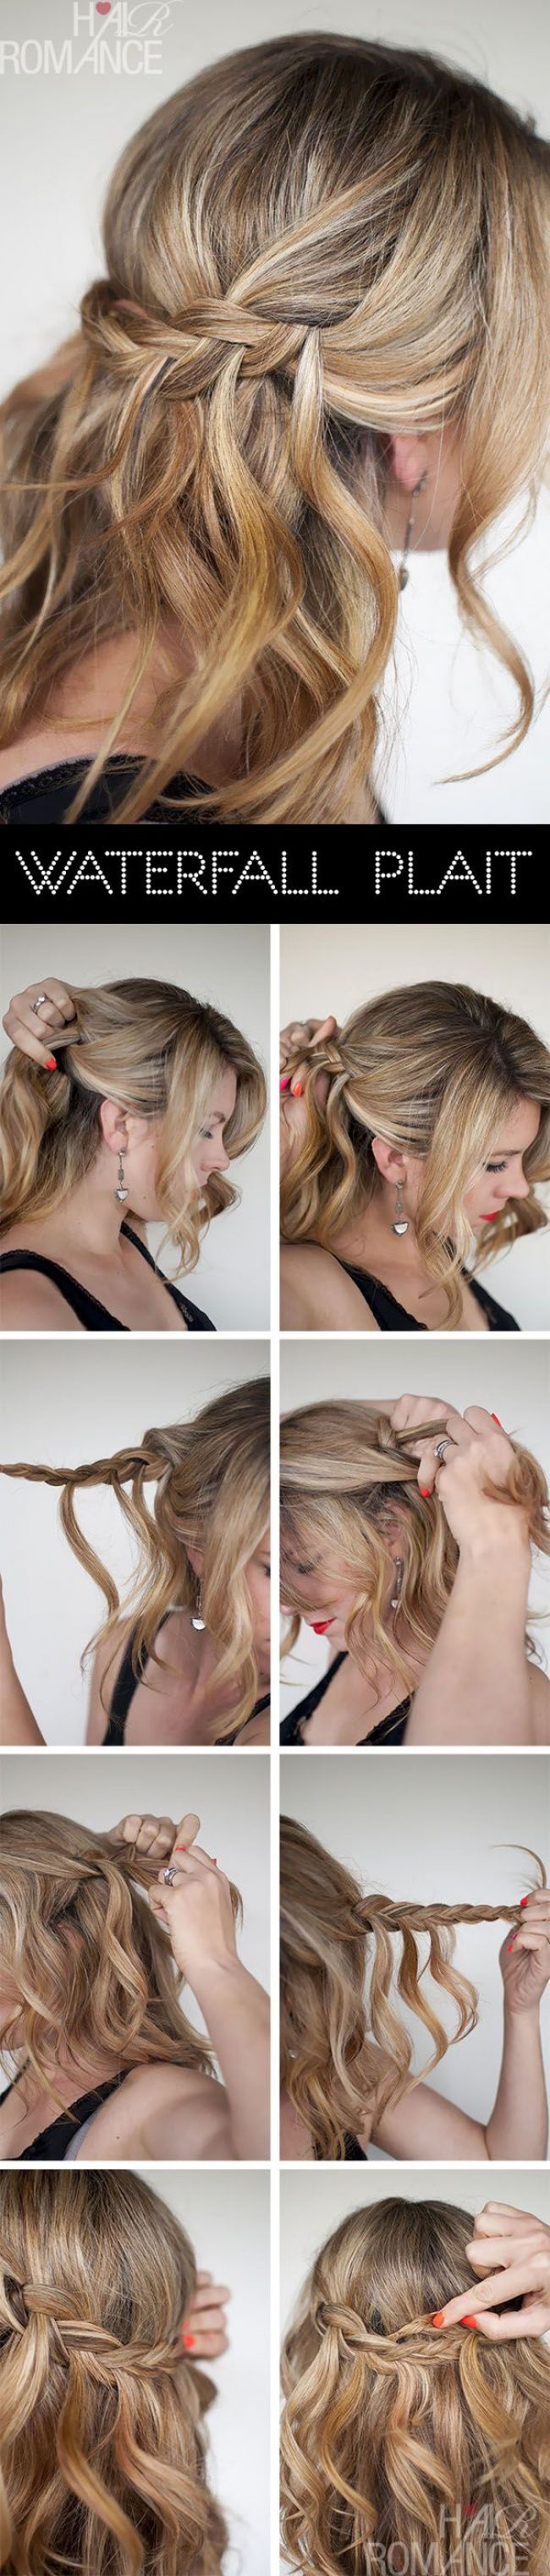 Amazing Half Up Half Down Hairstyle Tutorials 2015